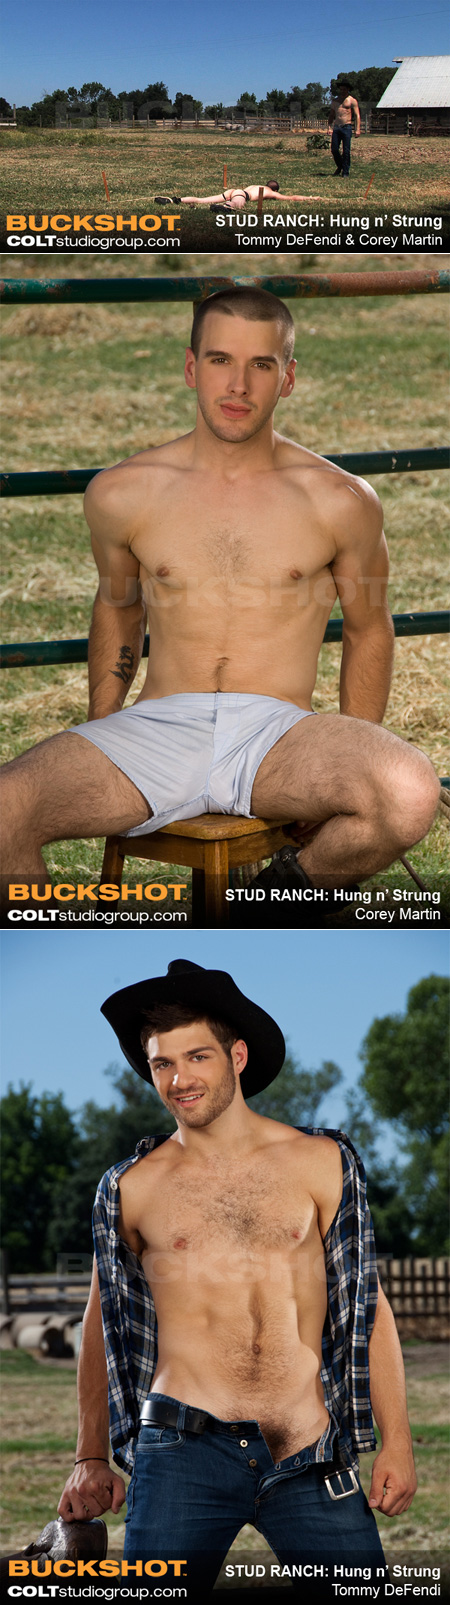 Lean male gets hog-tied and humiliated by another male cowboy.